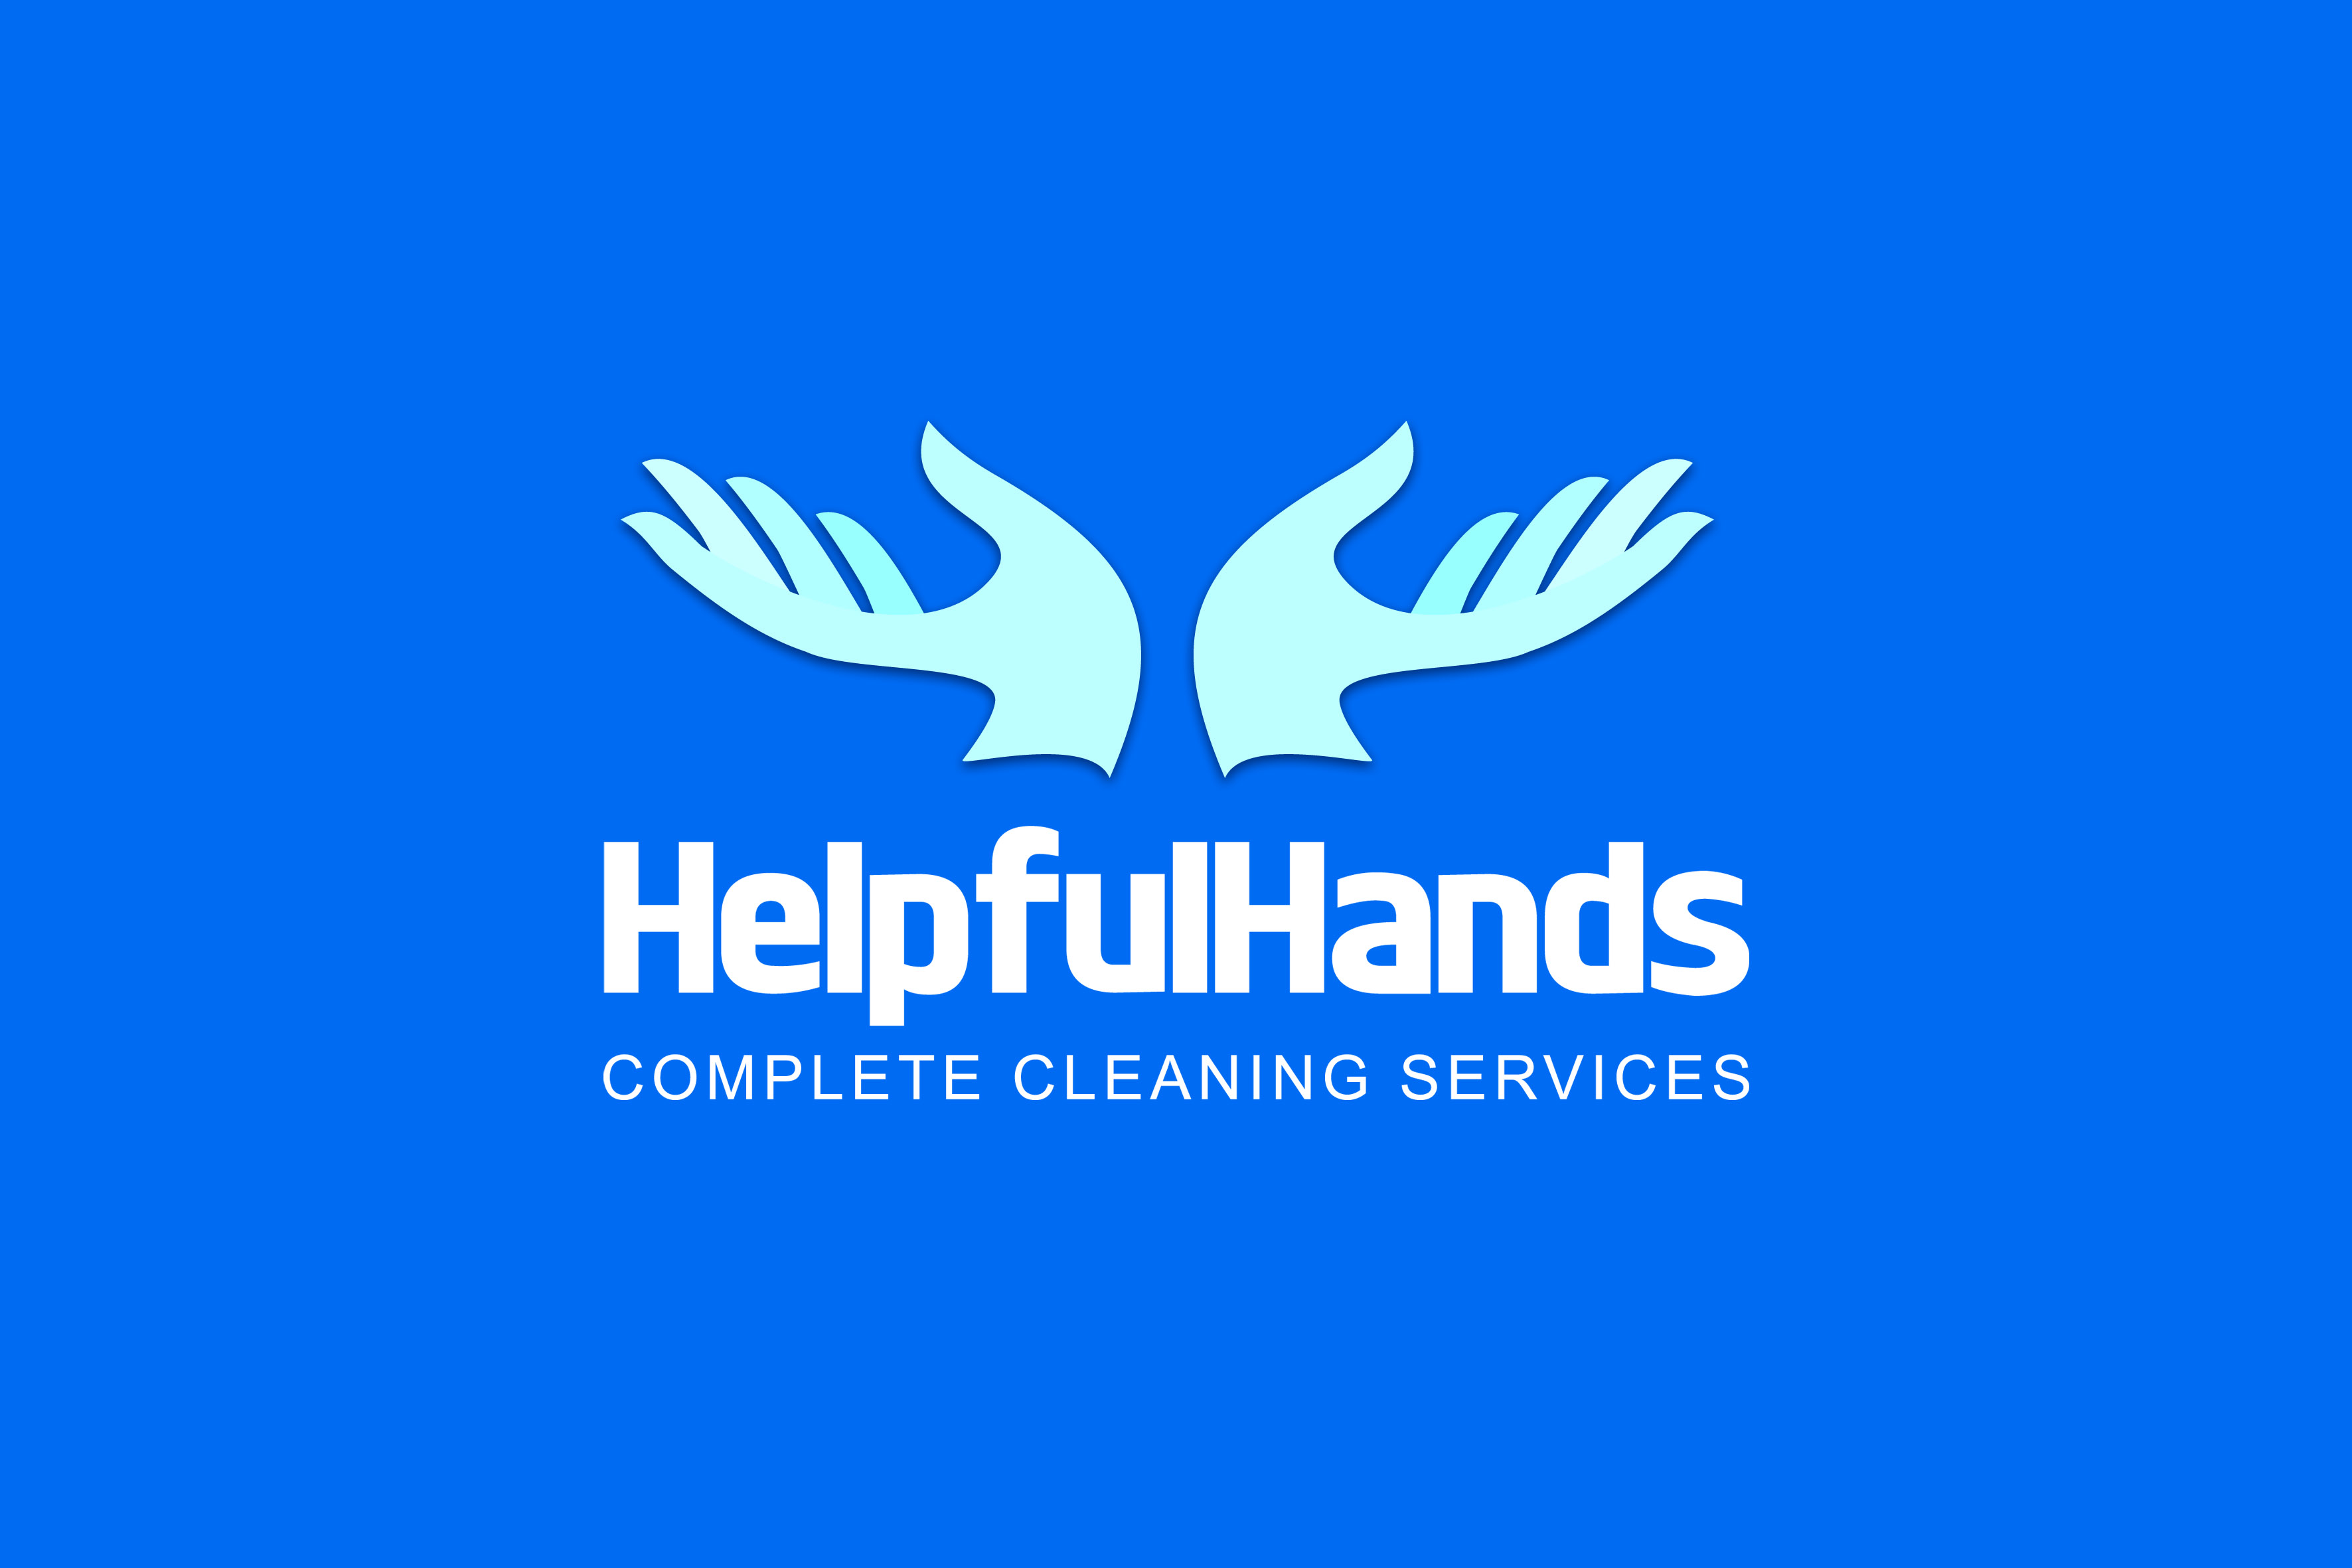 HelpfulHands Complete Cleaning